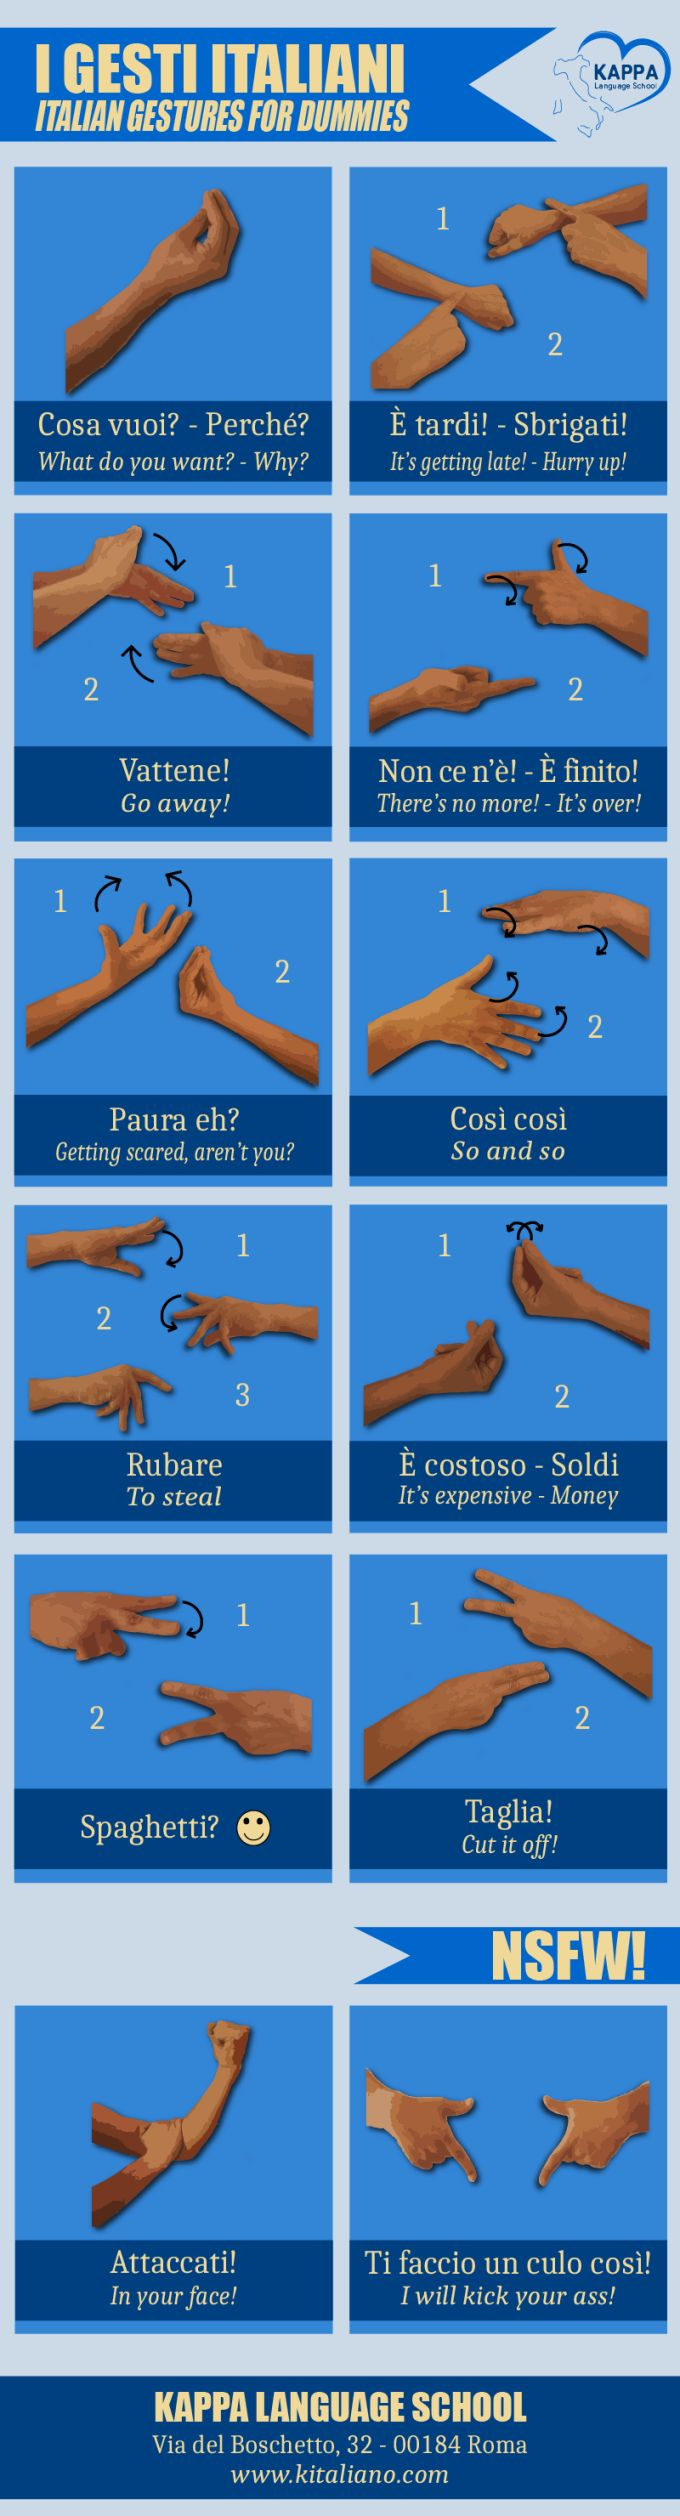 Italian gestures for dummies: an infographic